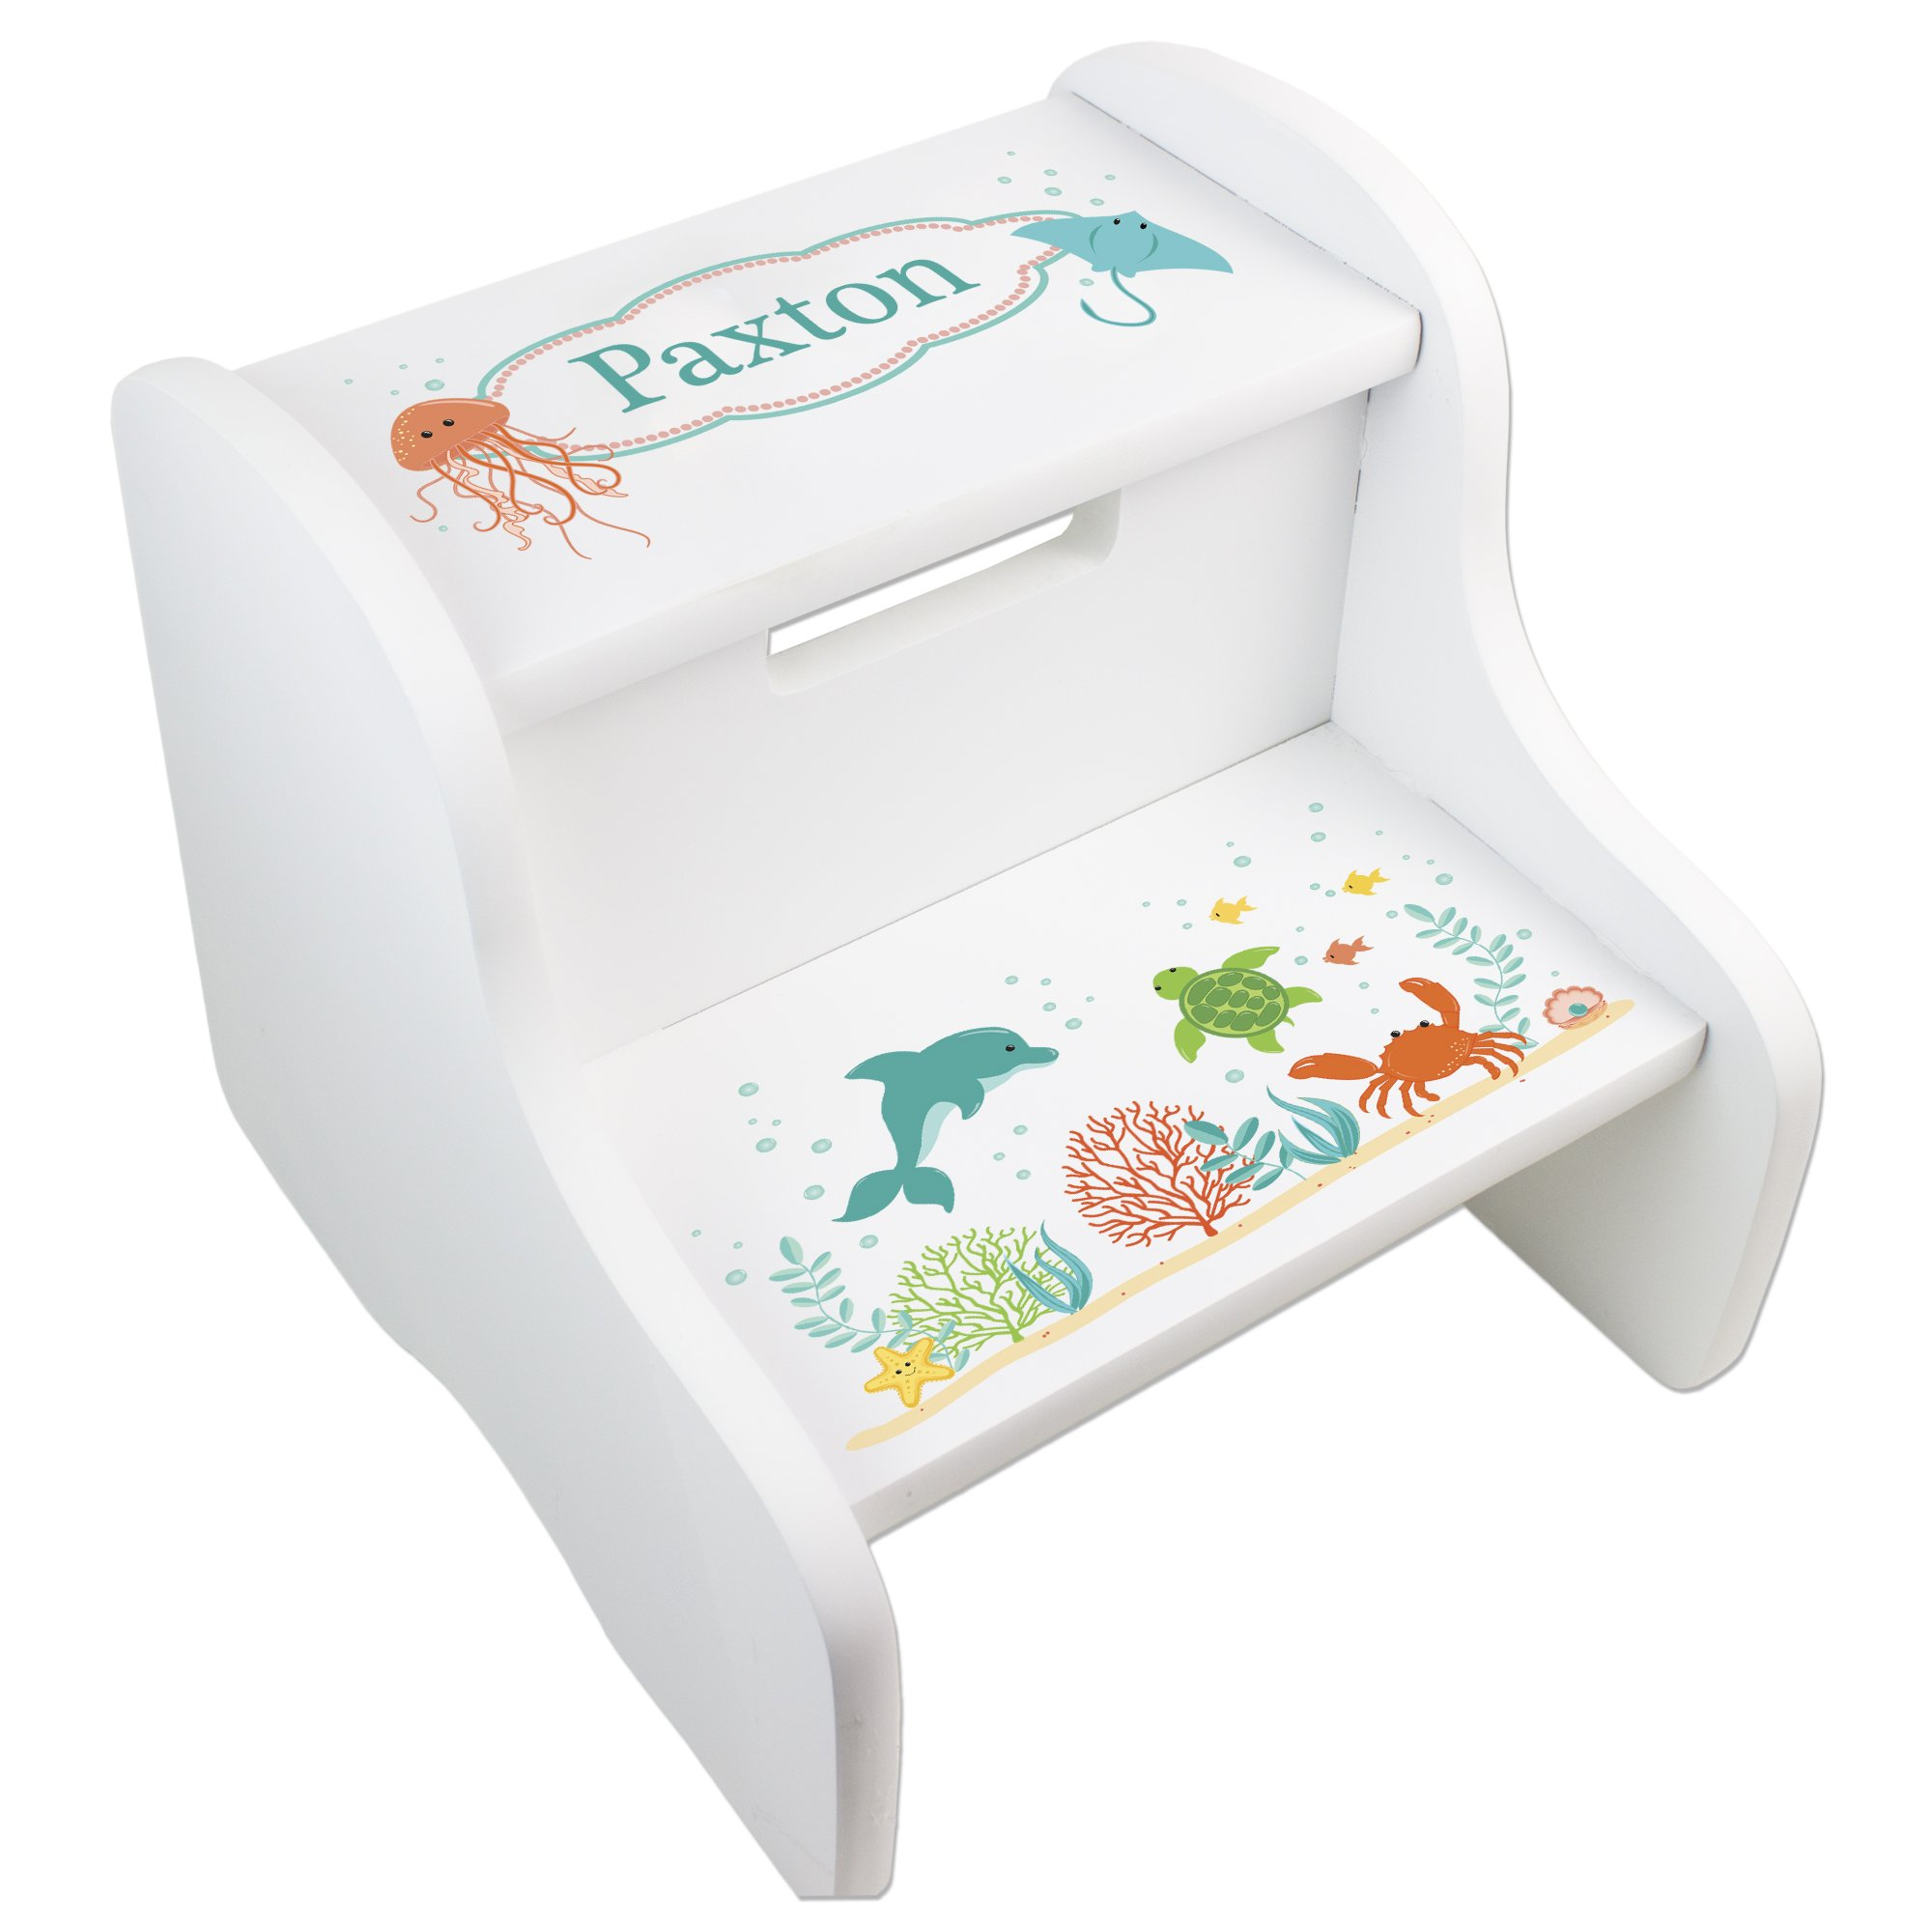 Personalized Natural Sealife Step Stool